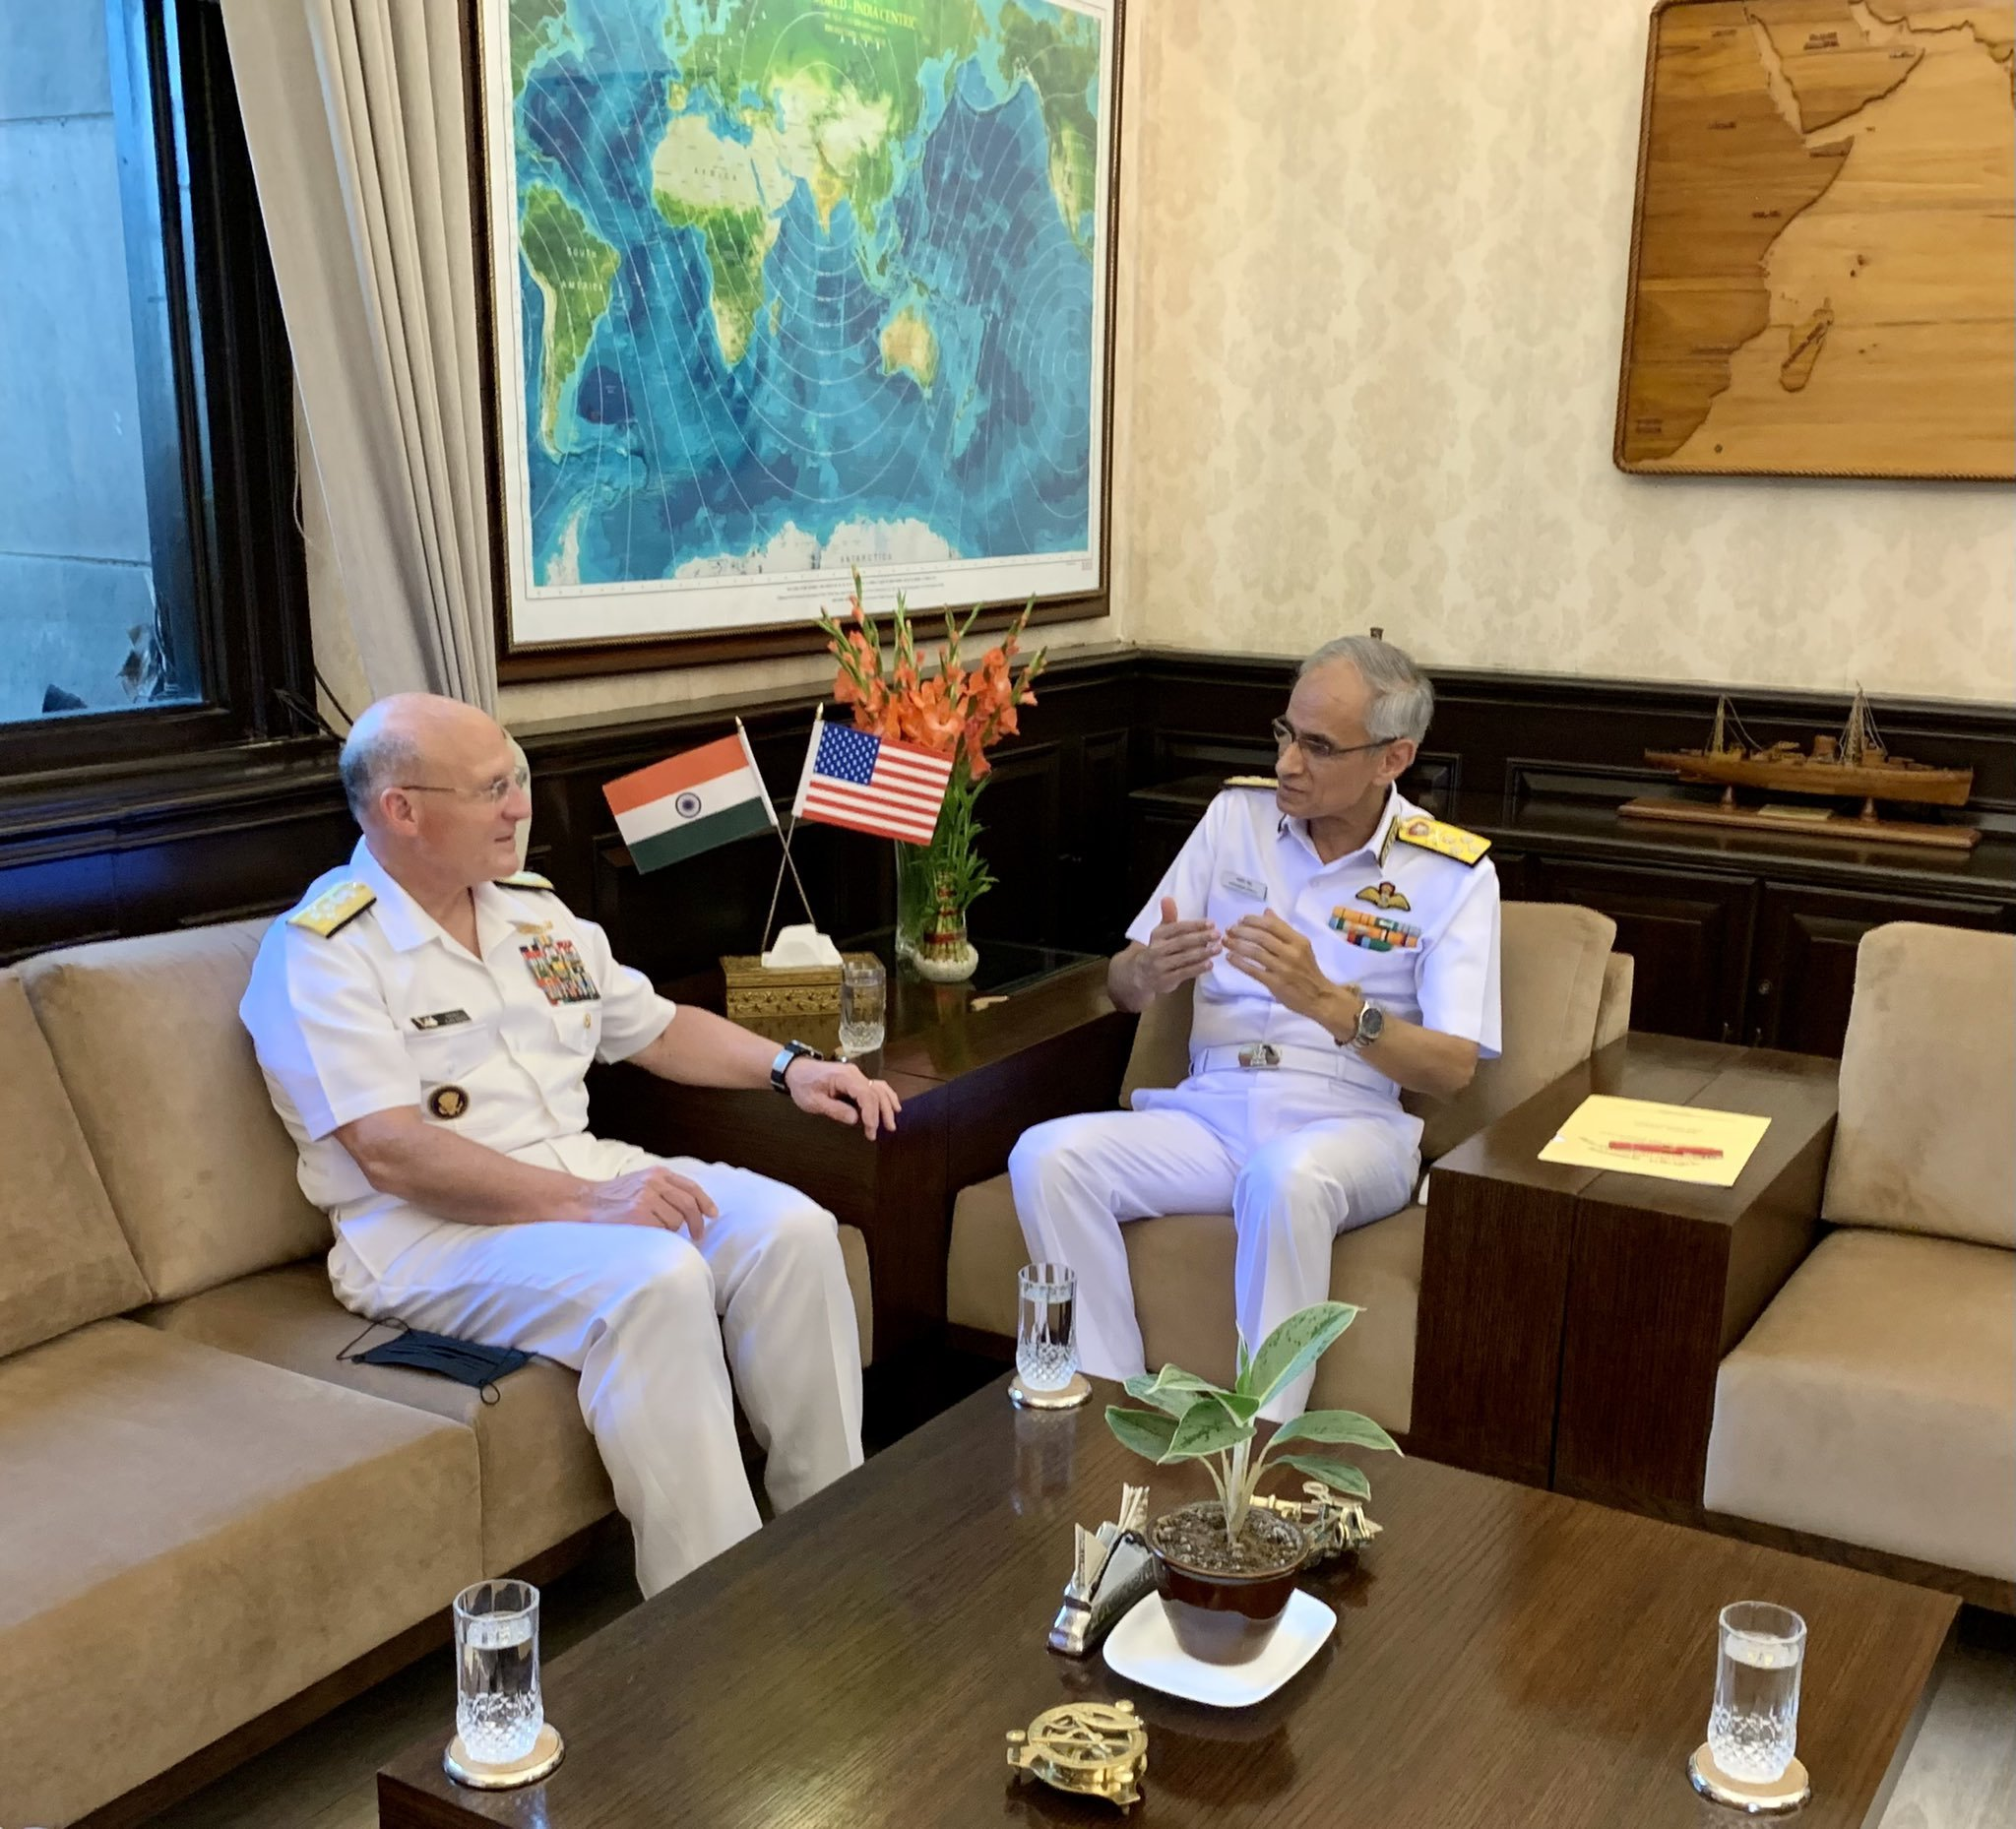 US Chief of Naval Operations (CNO) Admiral Michael Gilday held a meeting with Indian Navy Chief Admiral Karambir Singh